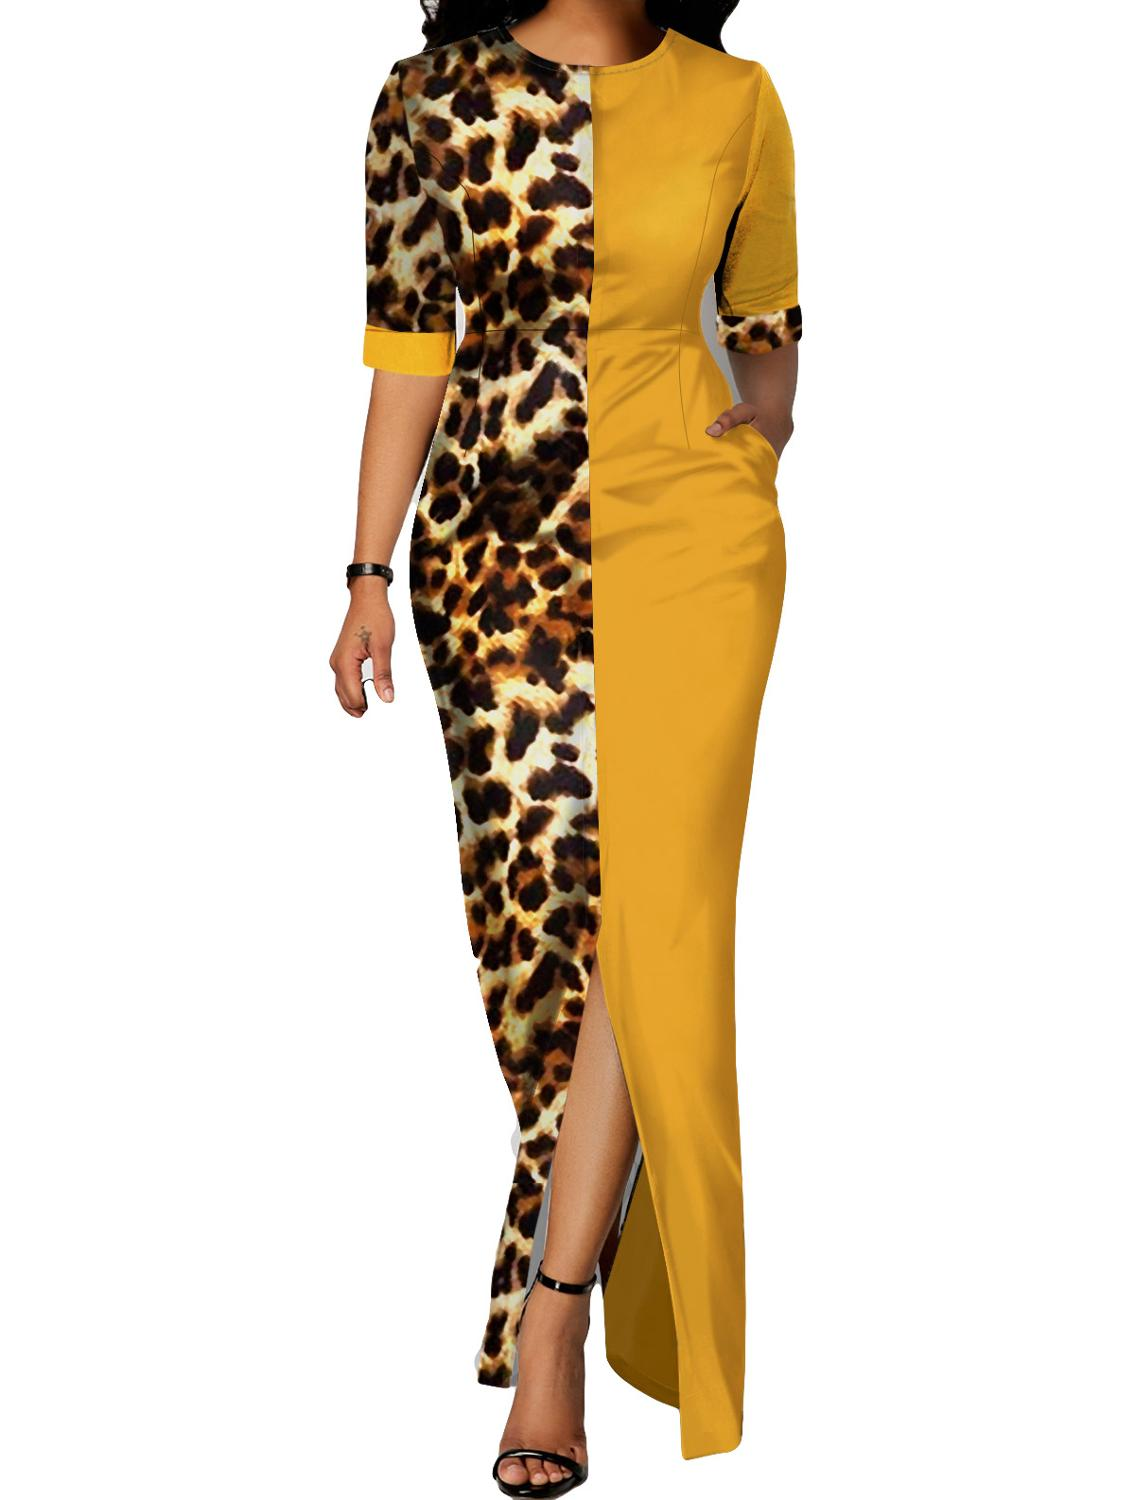 African Design Dashiki Dress Print Leopard Muslim Abaya Bazin Robe Gowns Africa Long Maxi Dresses Riche Lady Traditional Islamic